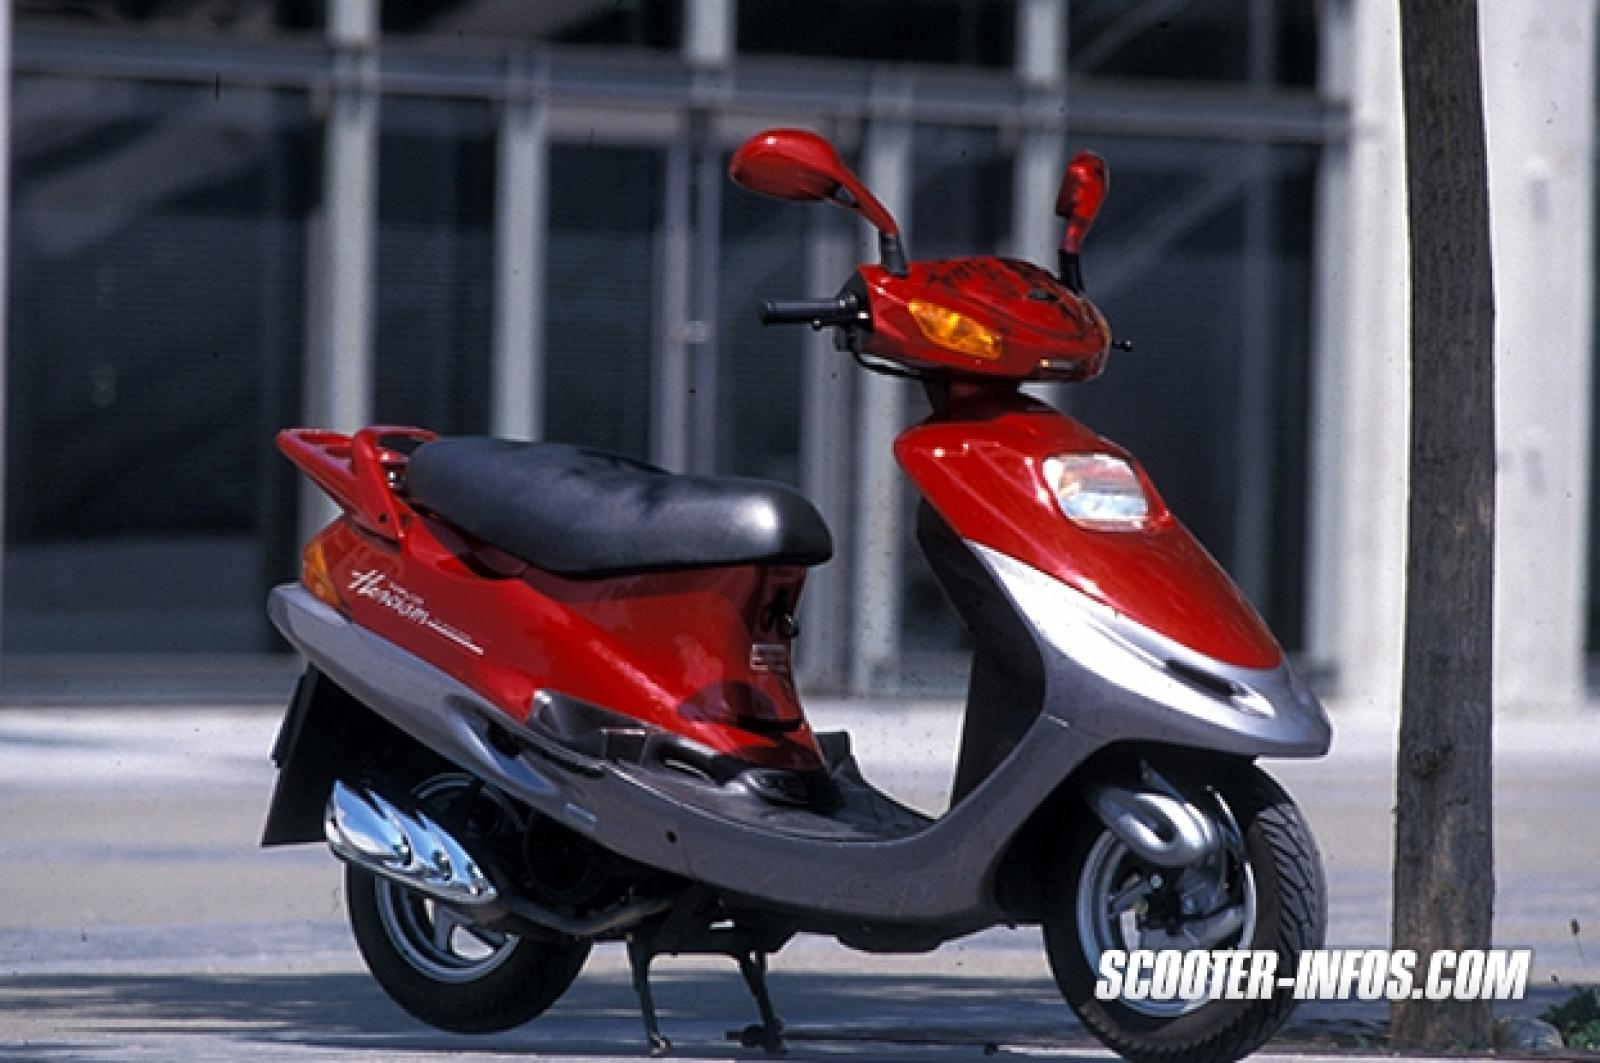 Kymco Heroism 150 1999 images #100666